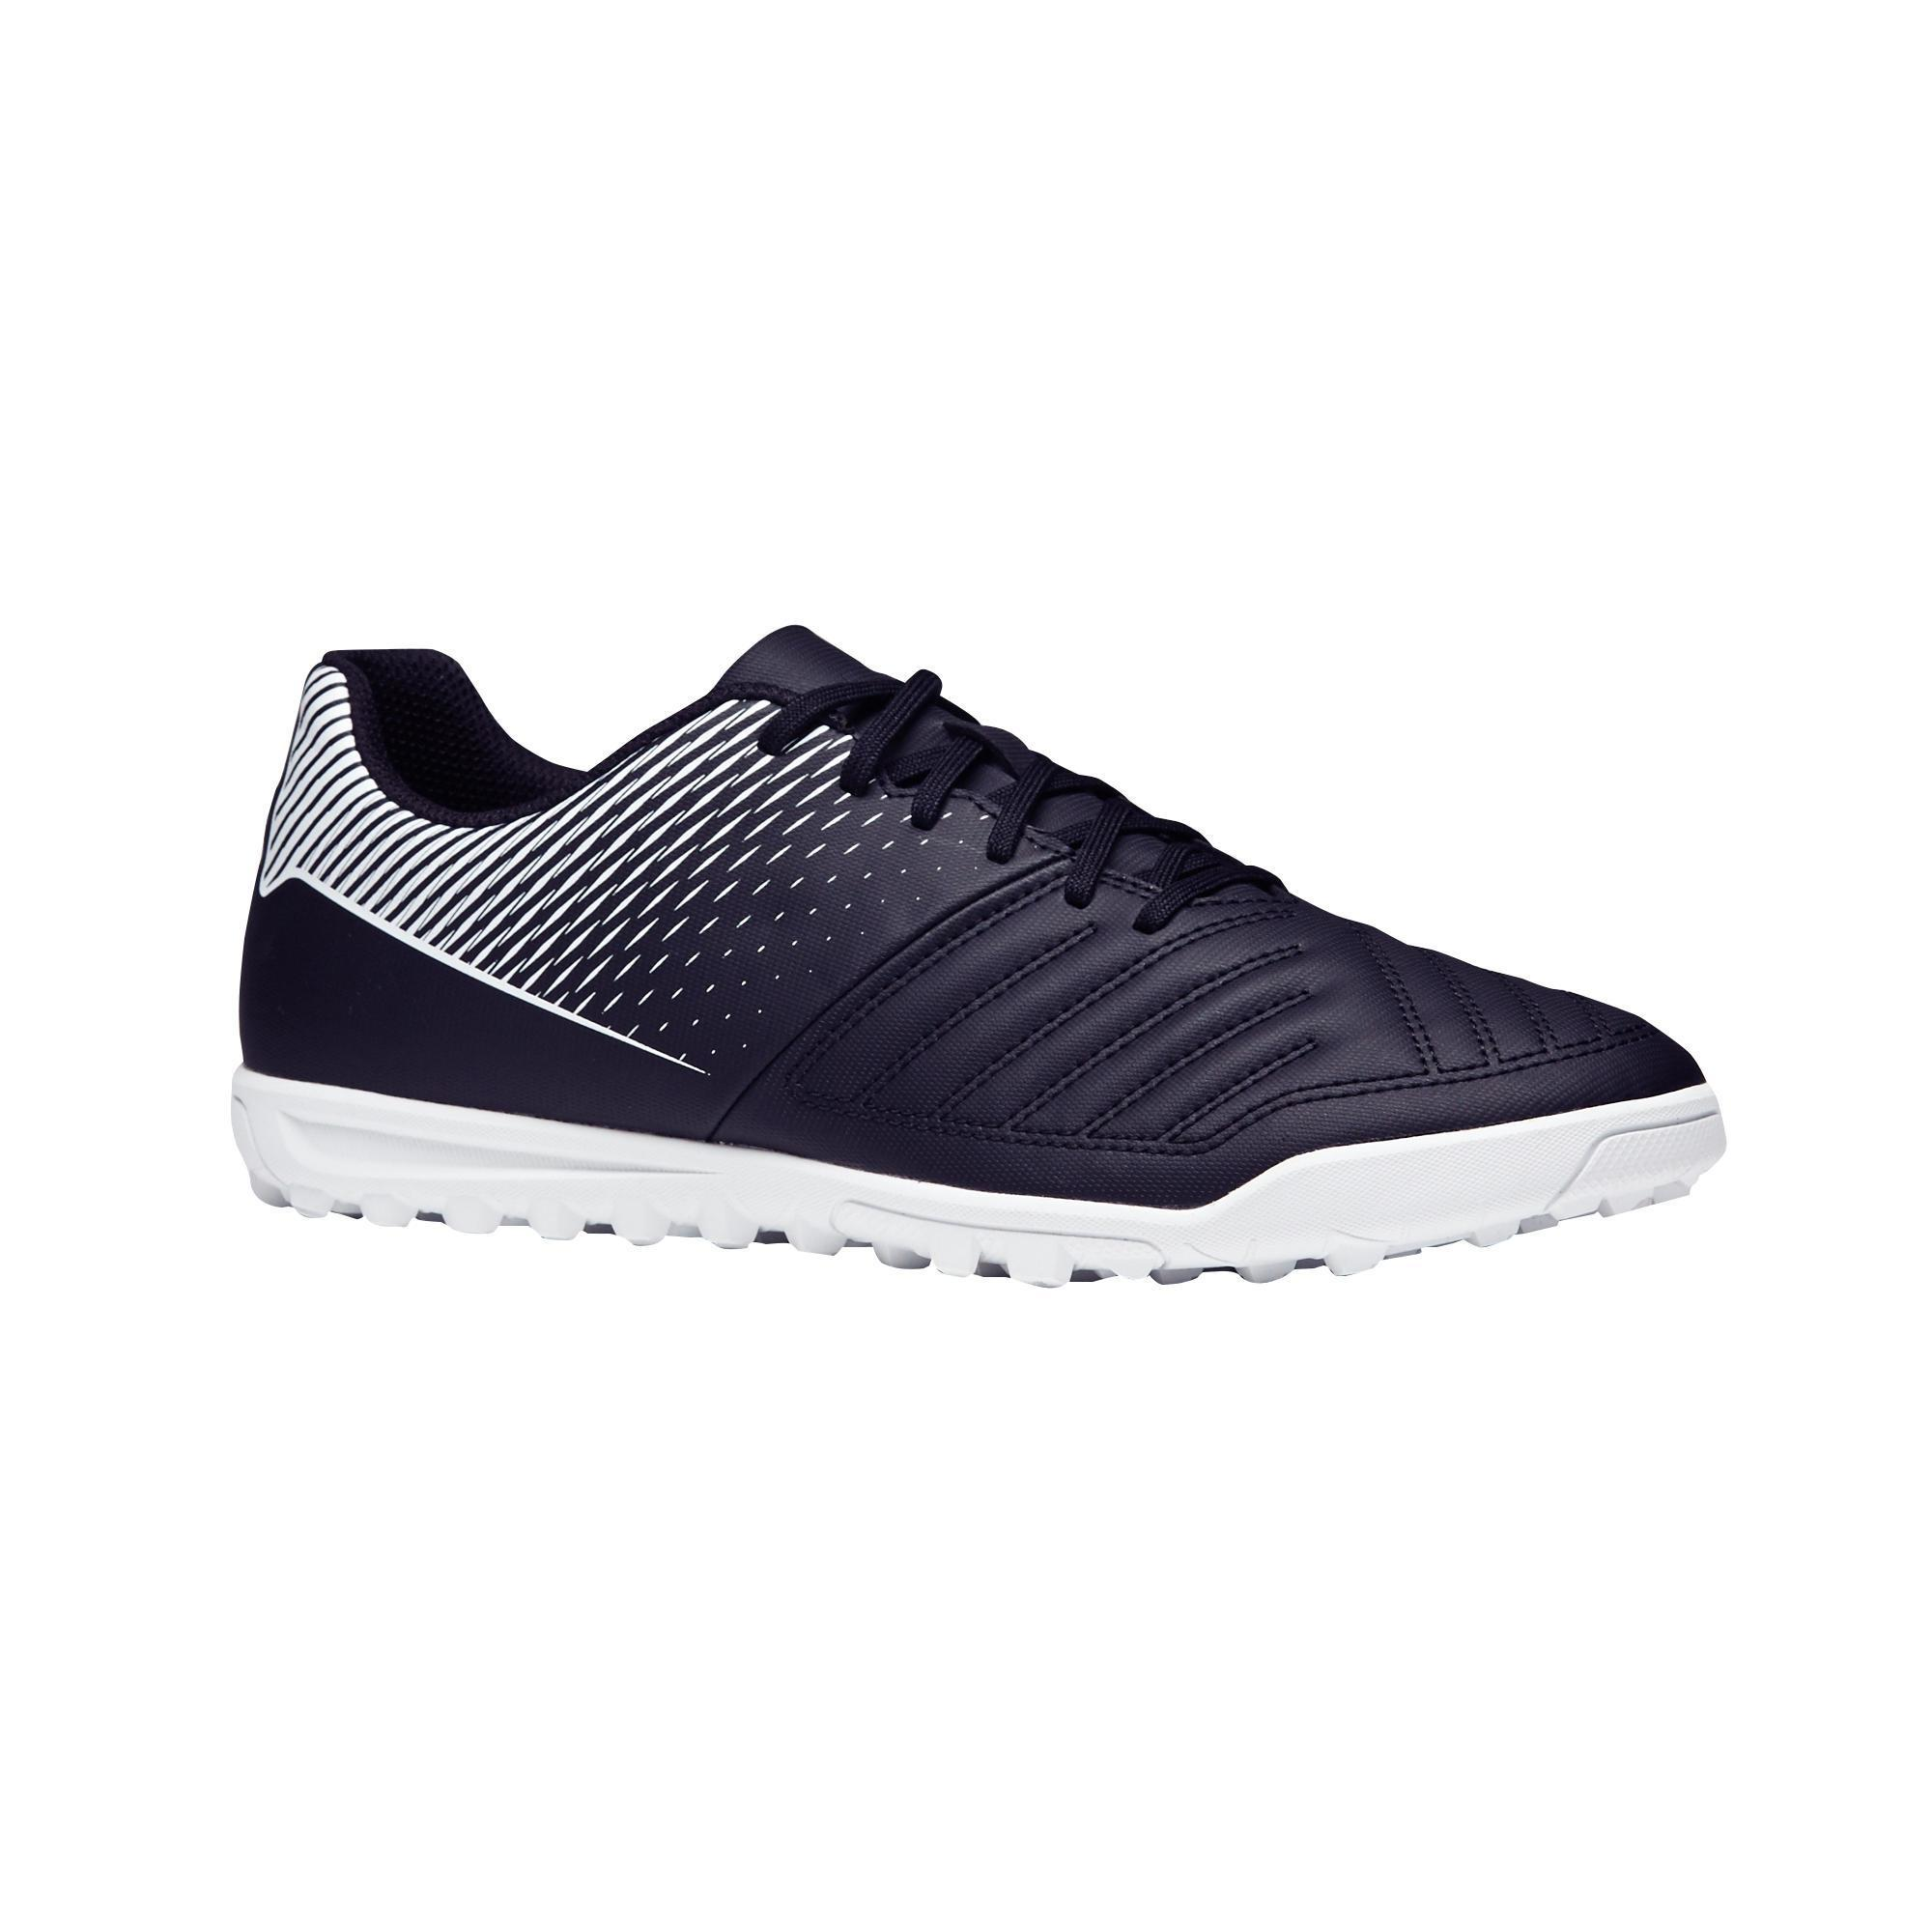 sports shoes 0740c 0982f Comprar Botas de Fútbol Adultos online | Decathlon